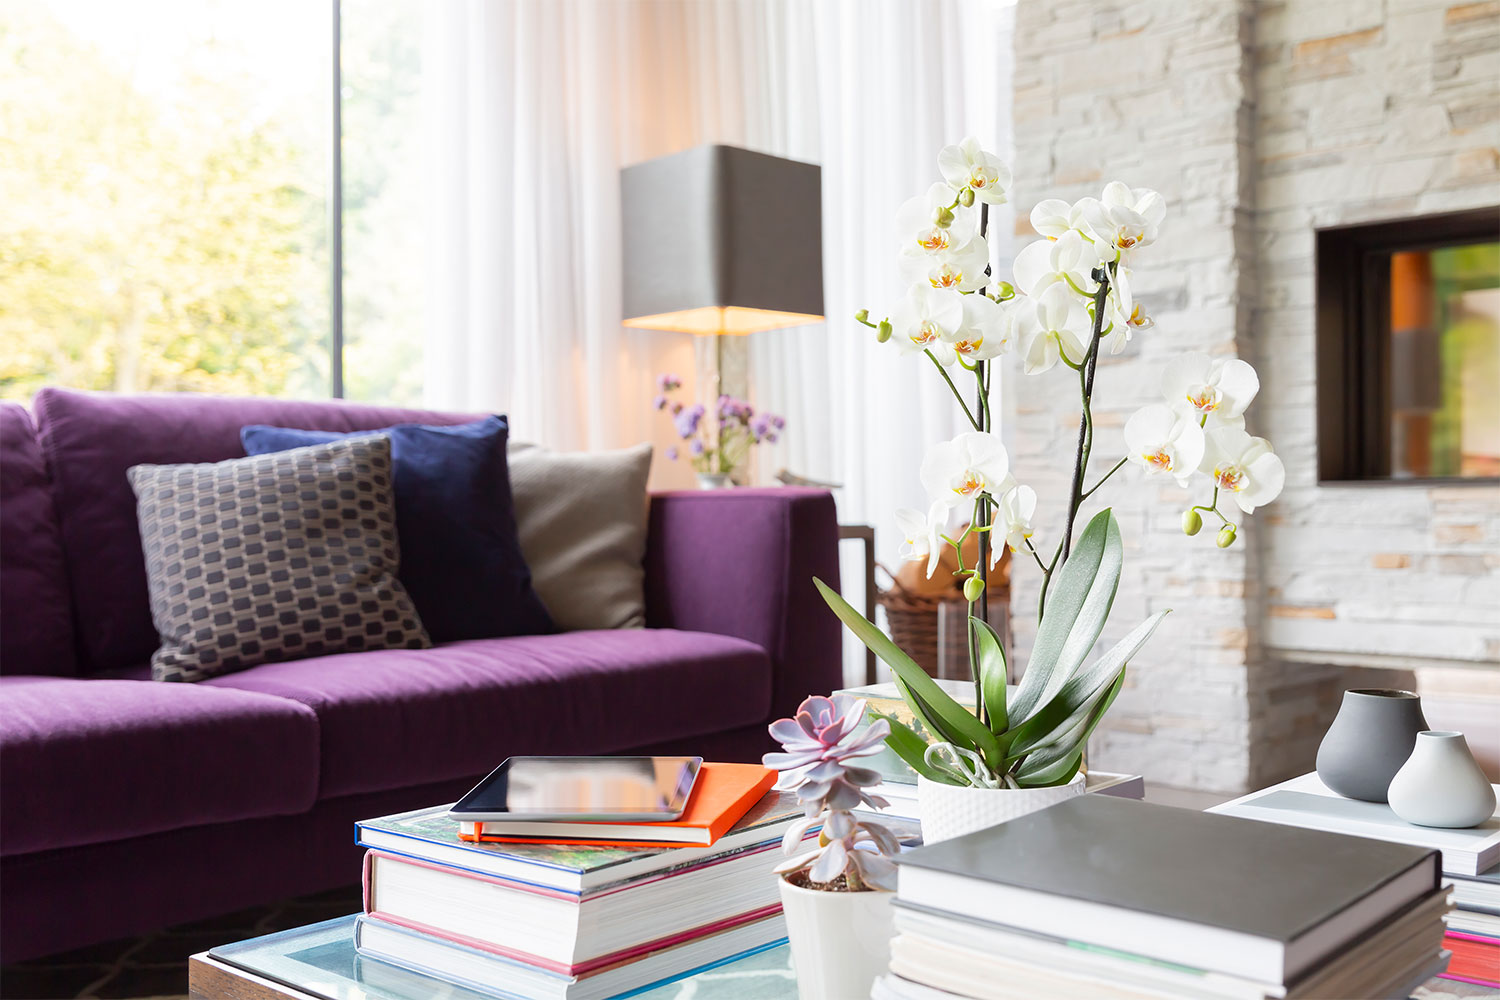 How To Decorate Your Coffee Table: 7 Gorgeous Coffee Table